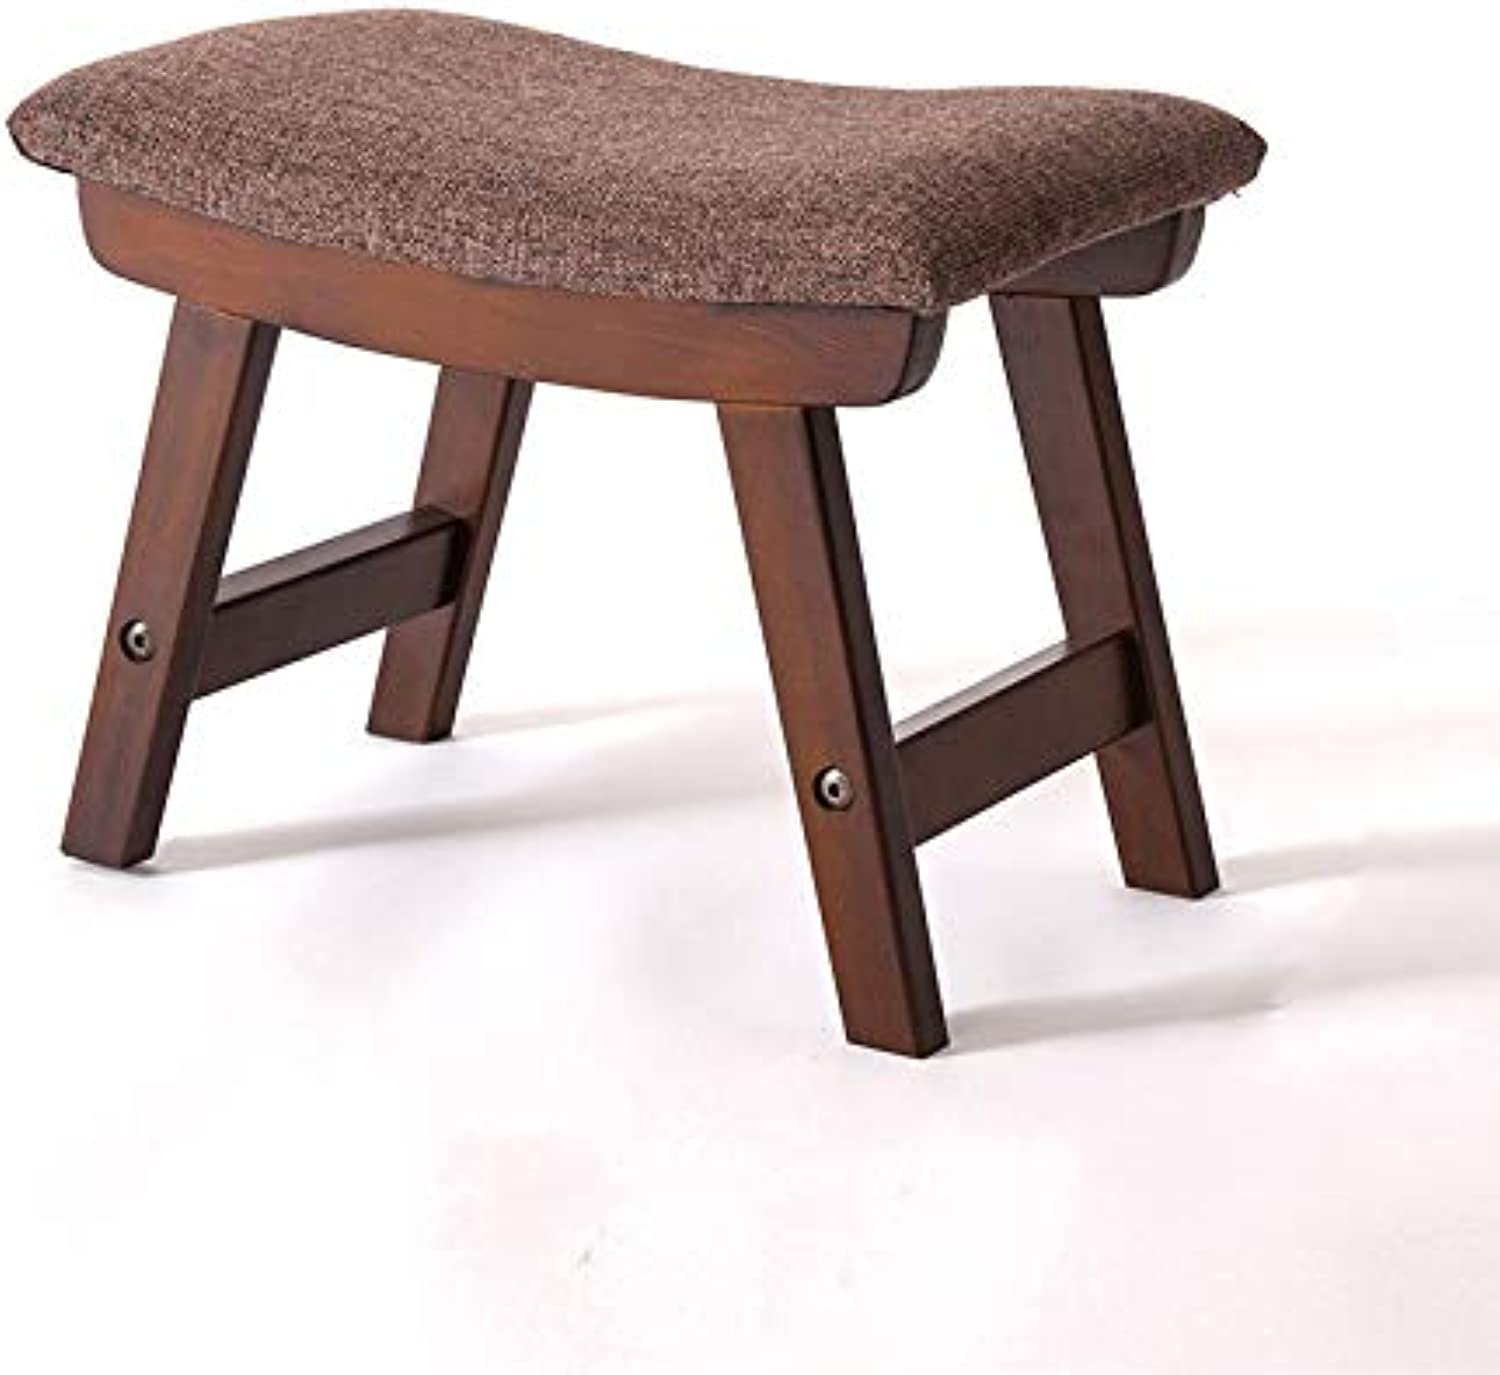 Stool Solid Wood Stool Change shoes Bench Minimalist Style Pine Brown Size  38  24  29cm, 49  31  42cm (color   B, Size   38  24  29cm)